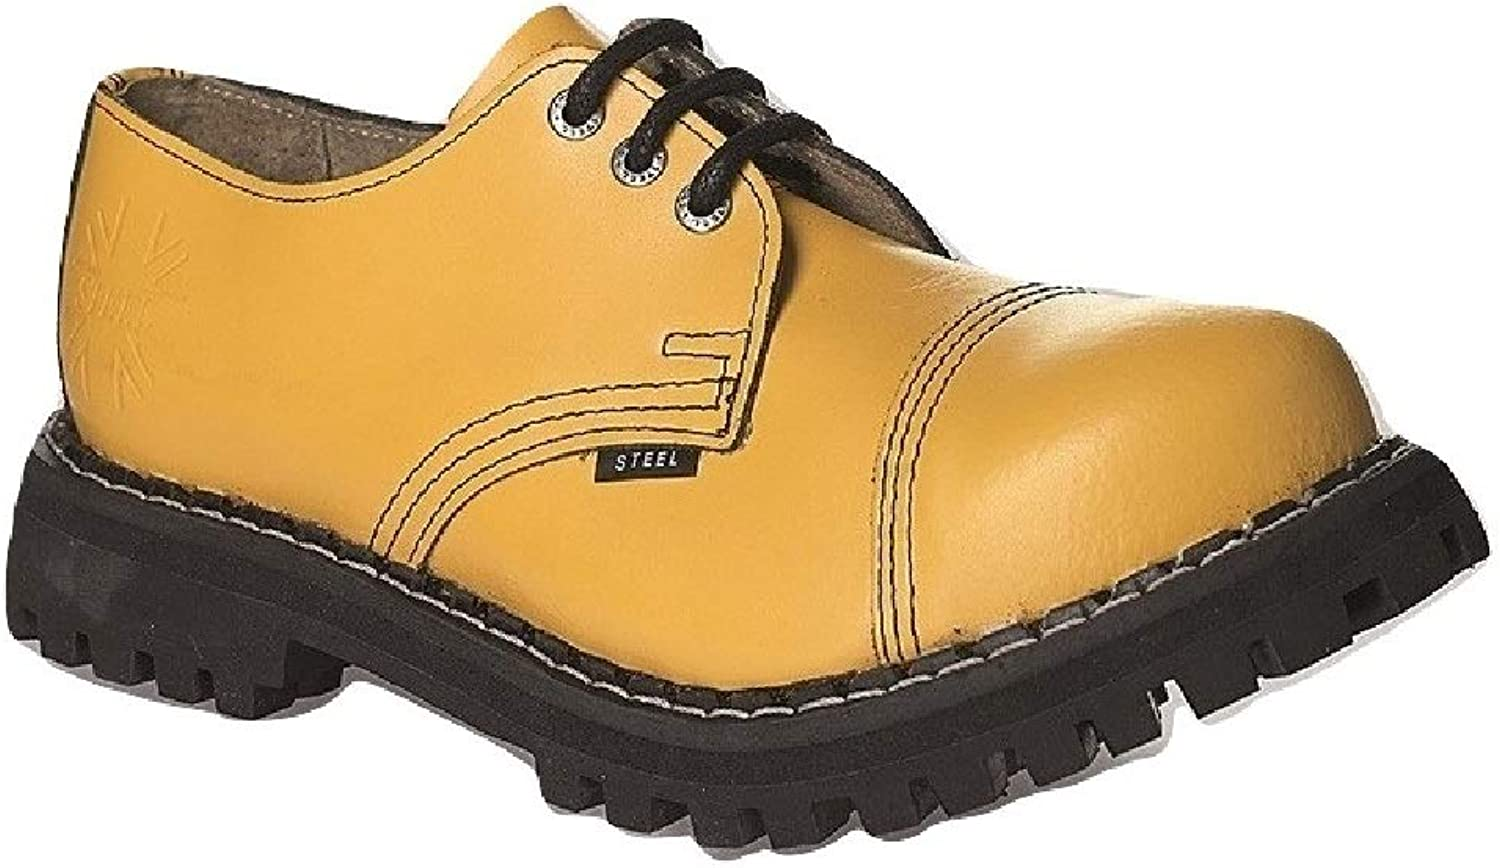 Steel Military shoes Unisex Men's Ladies Leather Yellow 3 Eyelets Army Punk Toe Cap